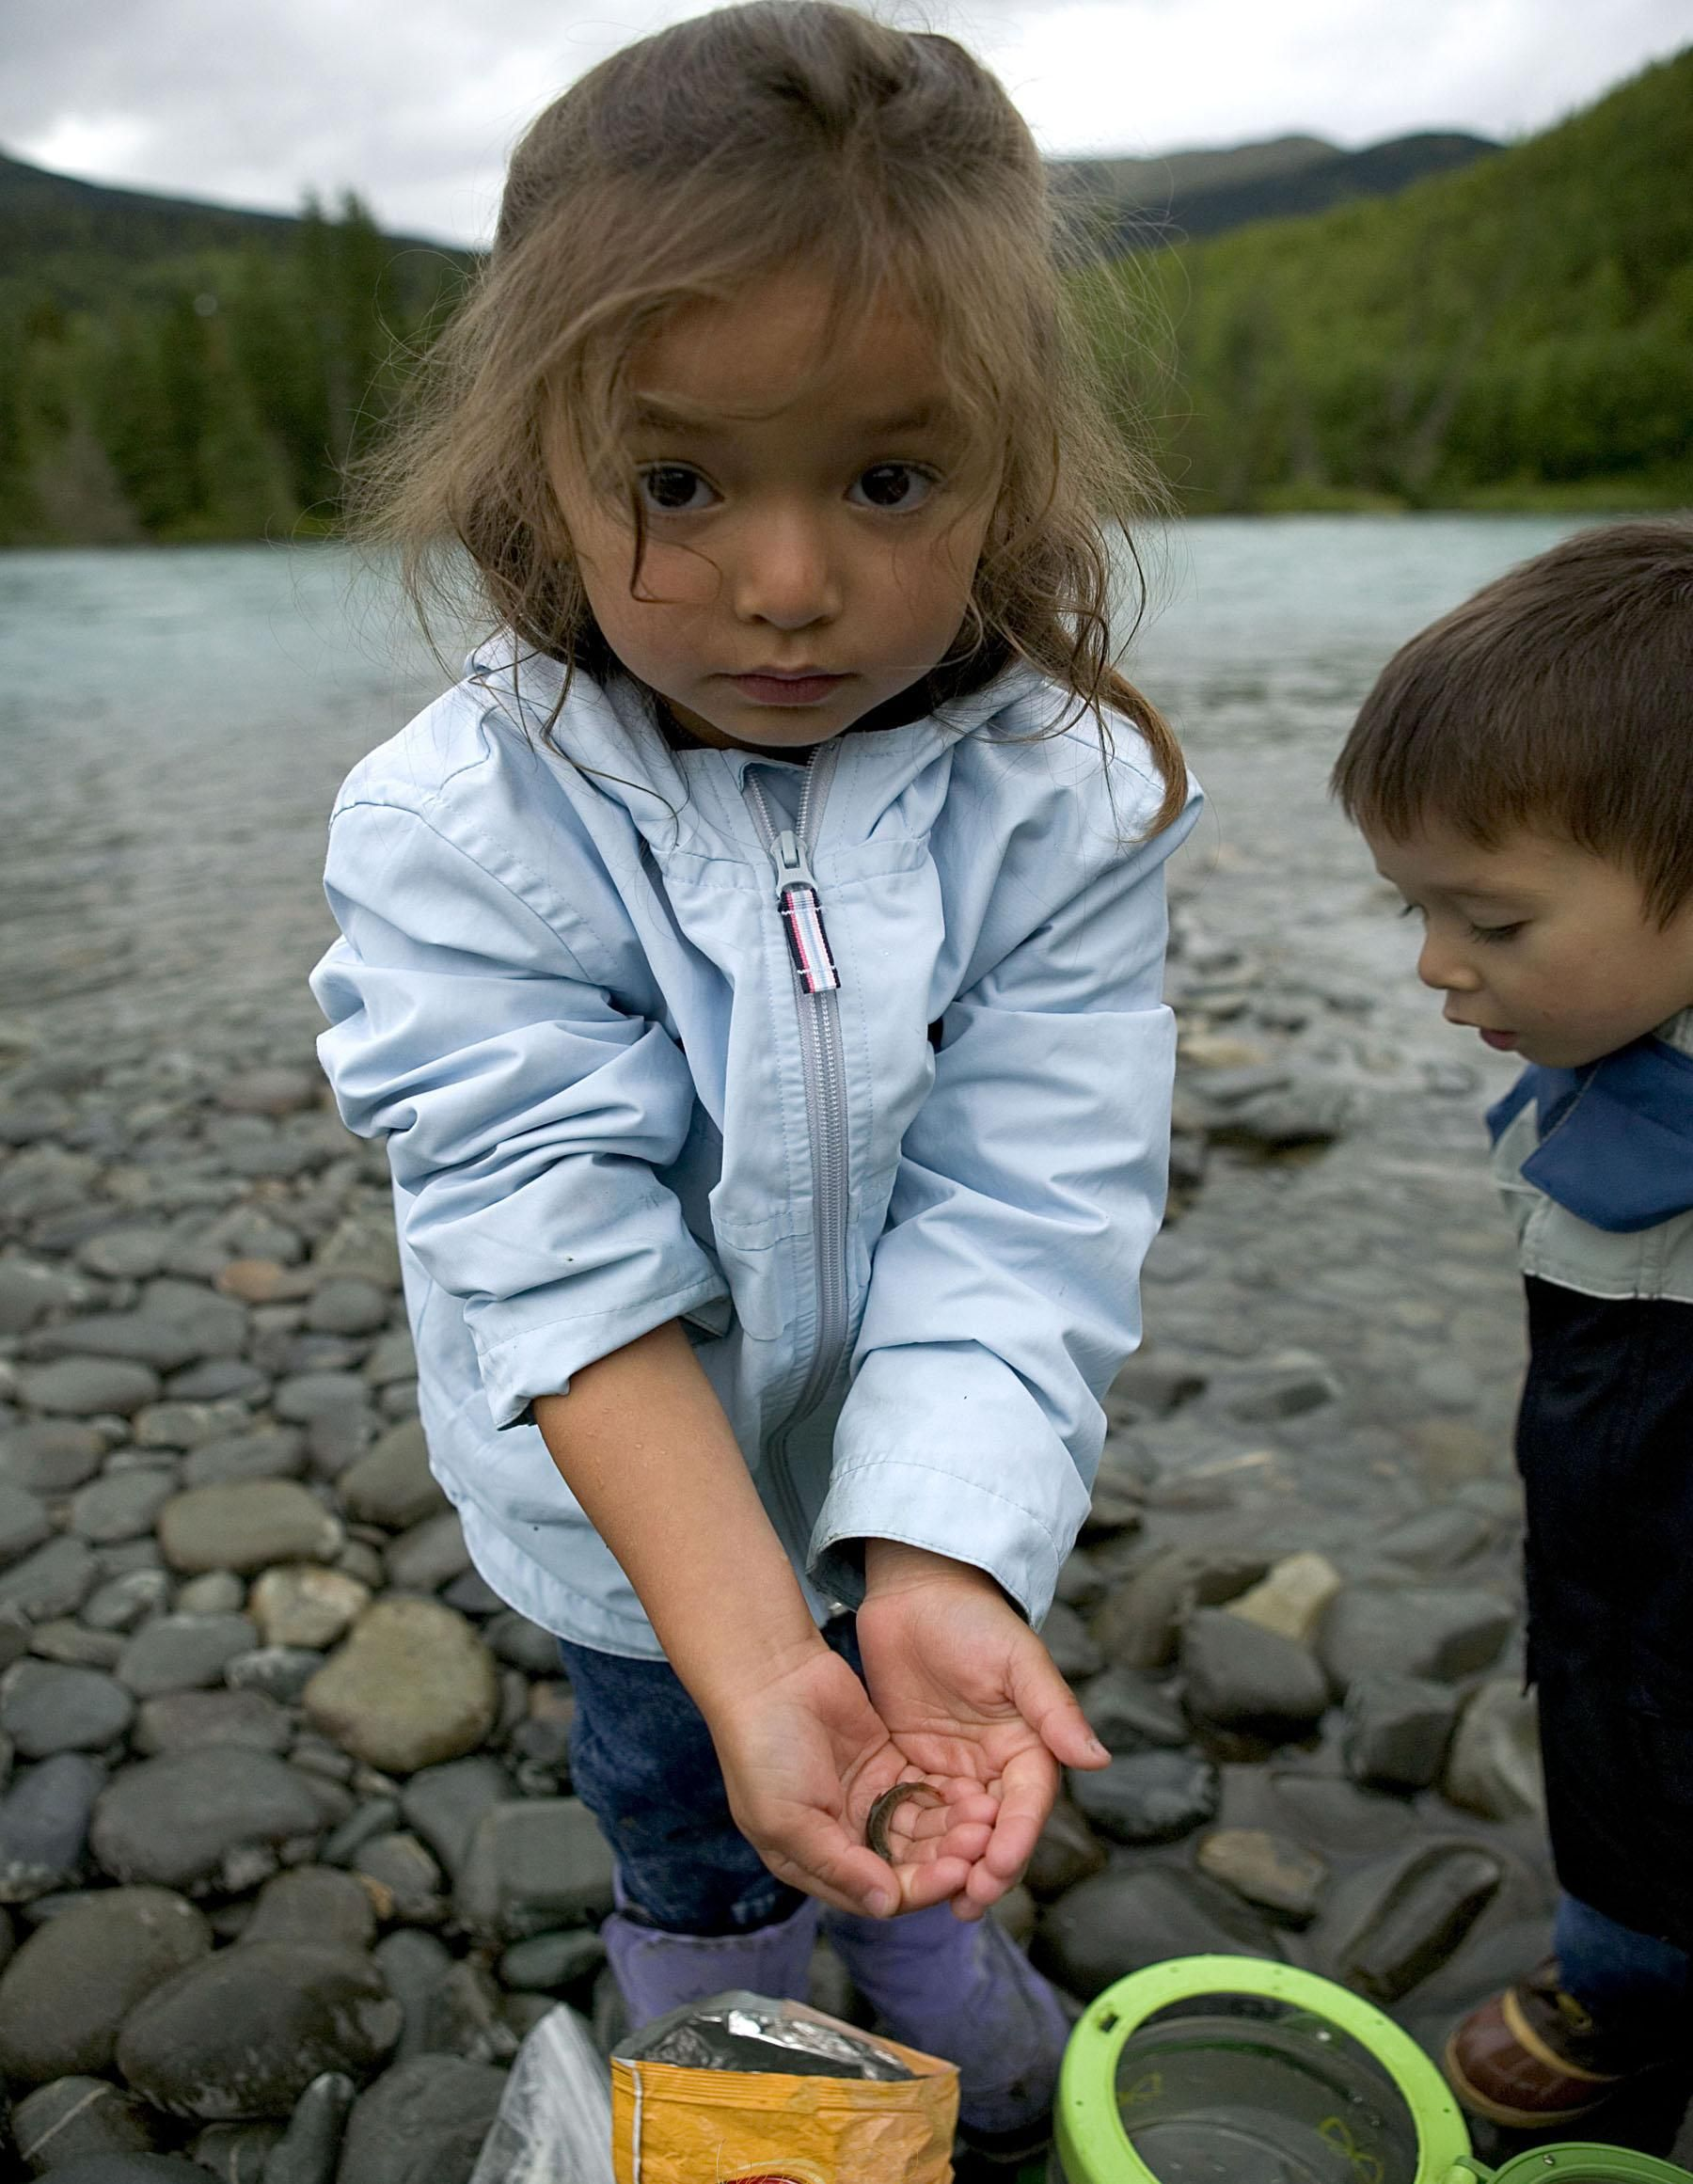 Little Kids Fishing